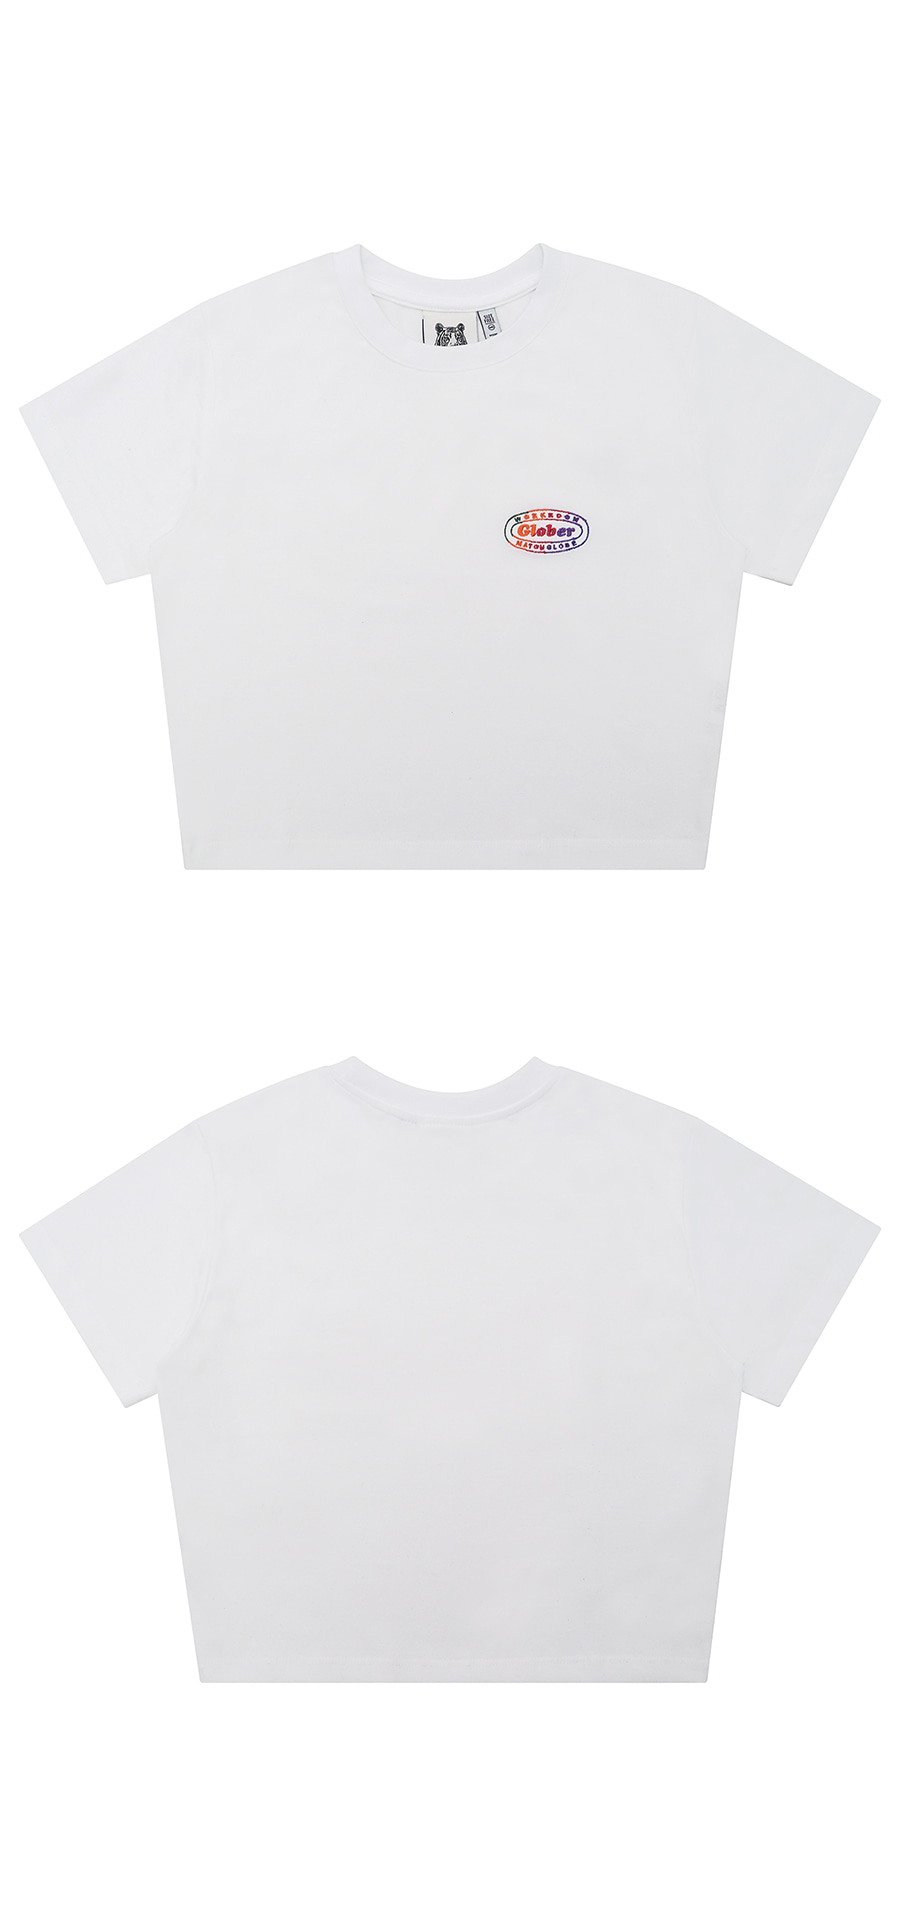 매치글로브(MATCHGLOBE) MG9S RAINBOW CROP TEE (WHITE)